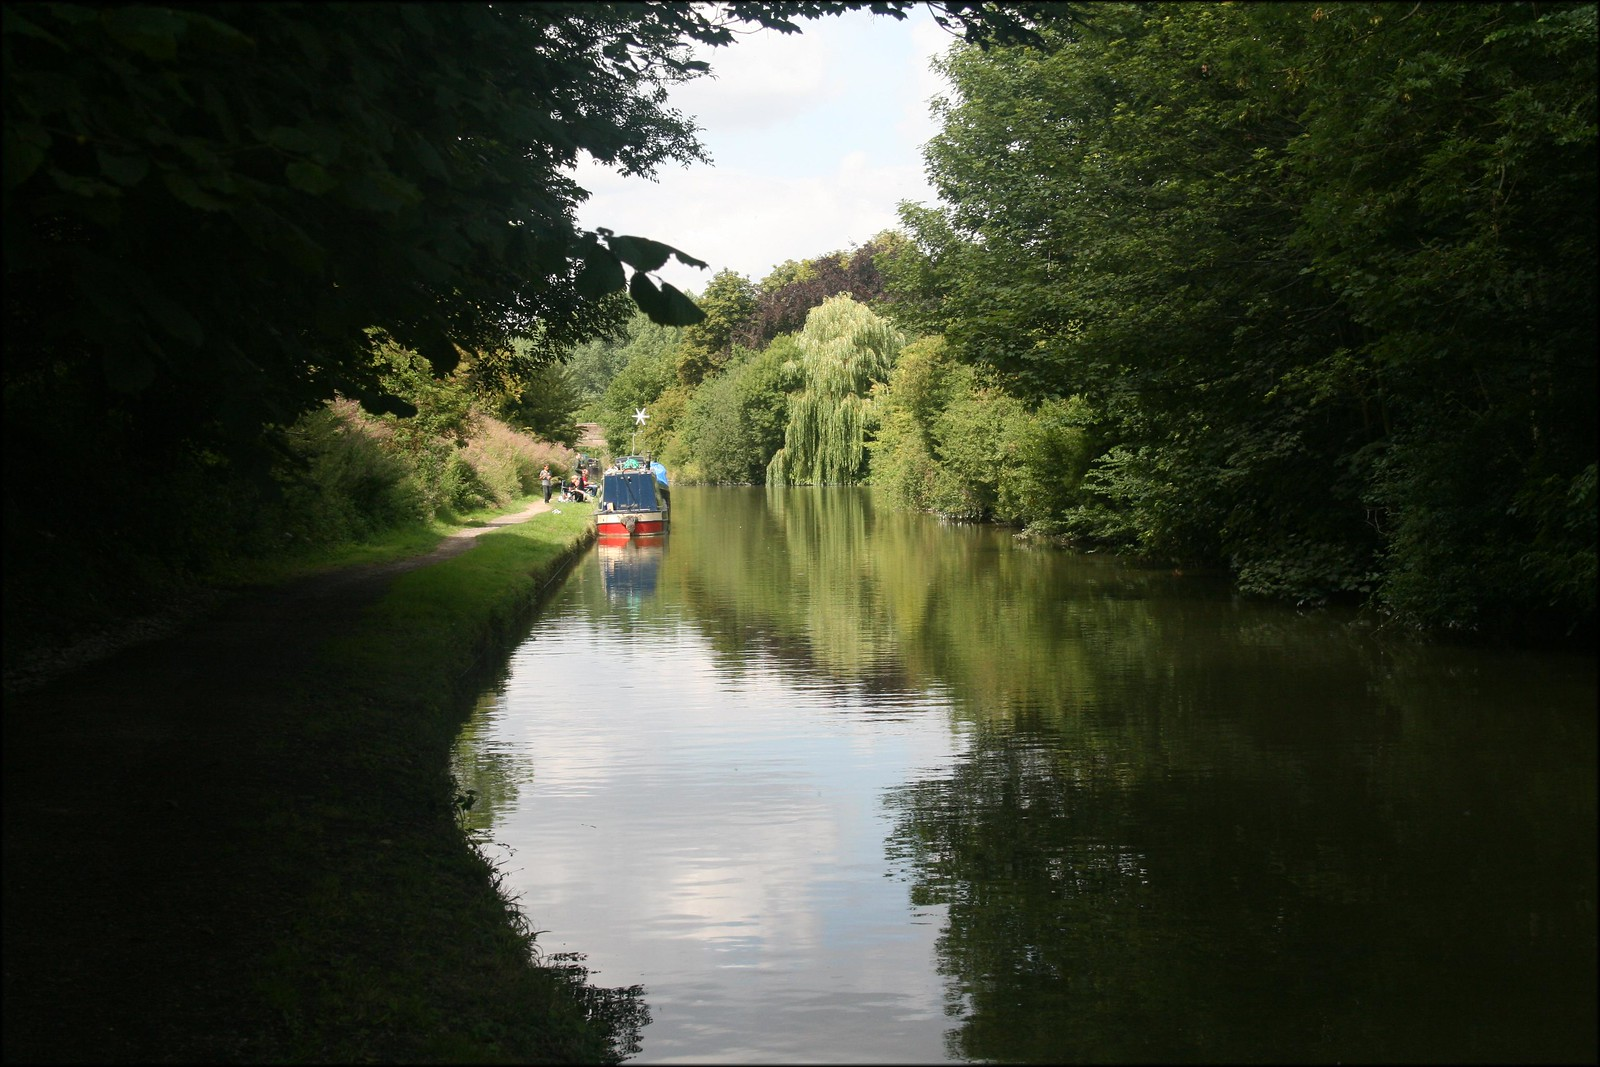 The Grand Union Canal near Tring